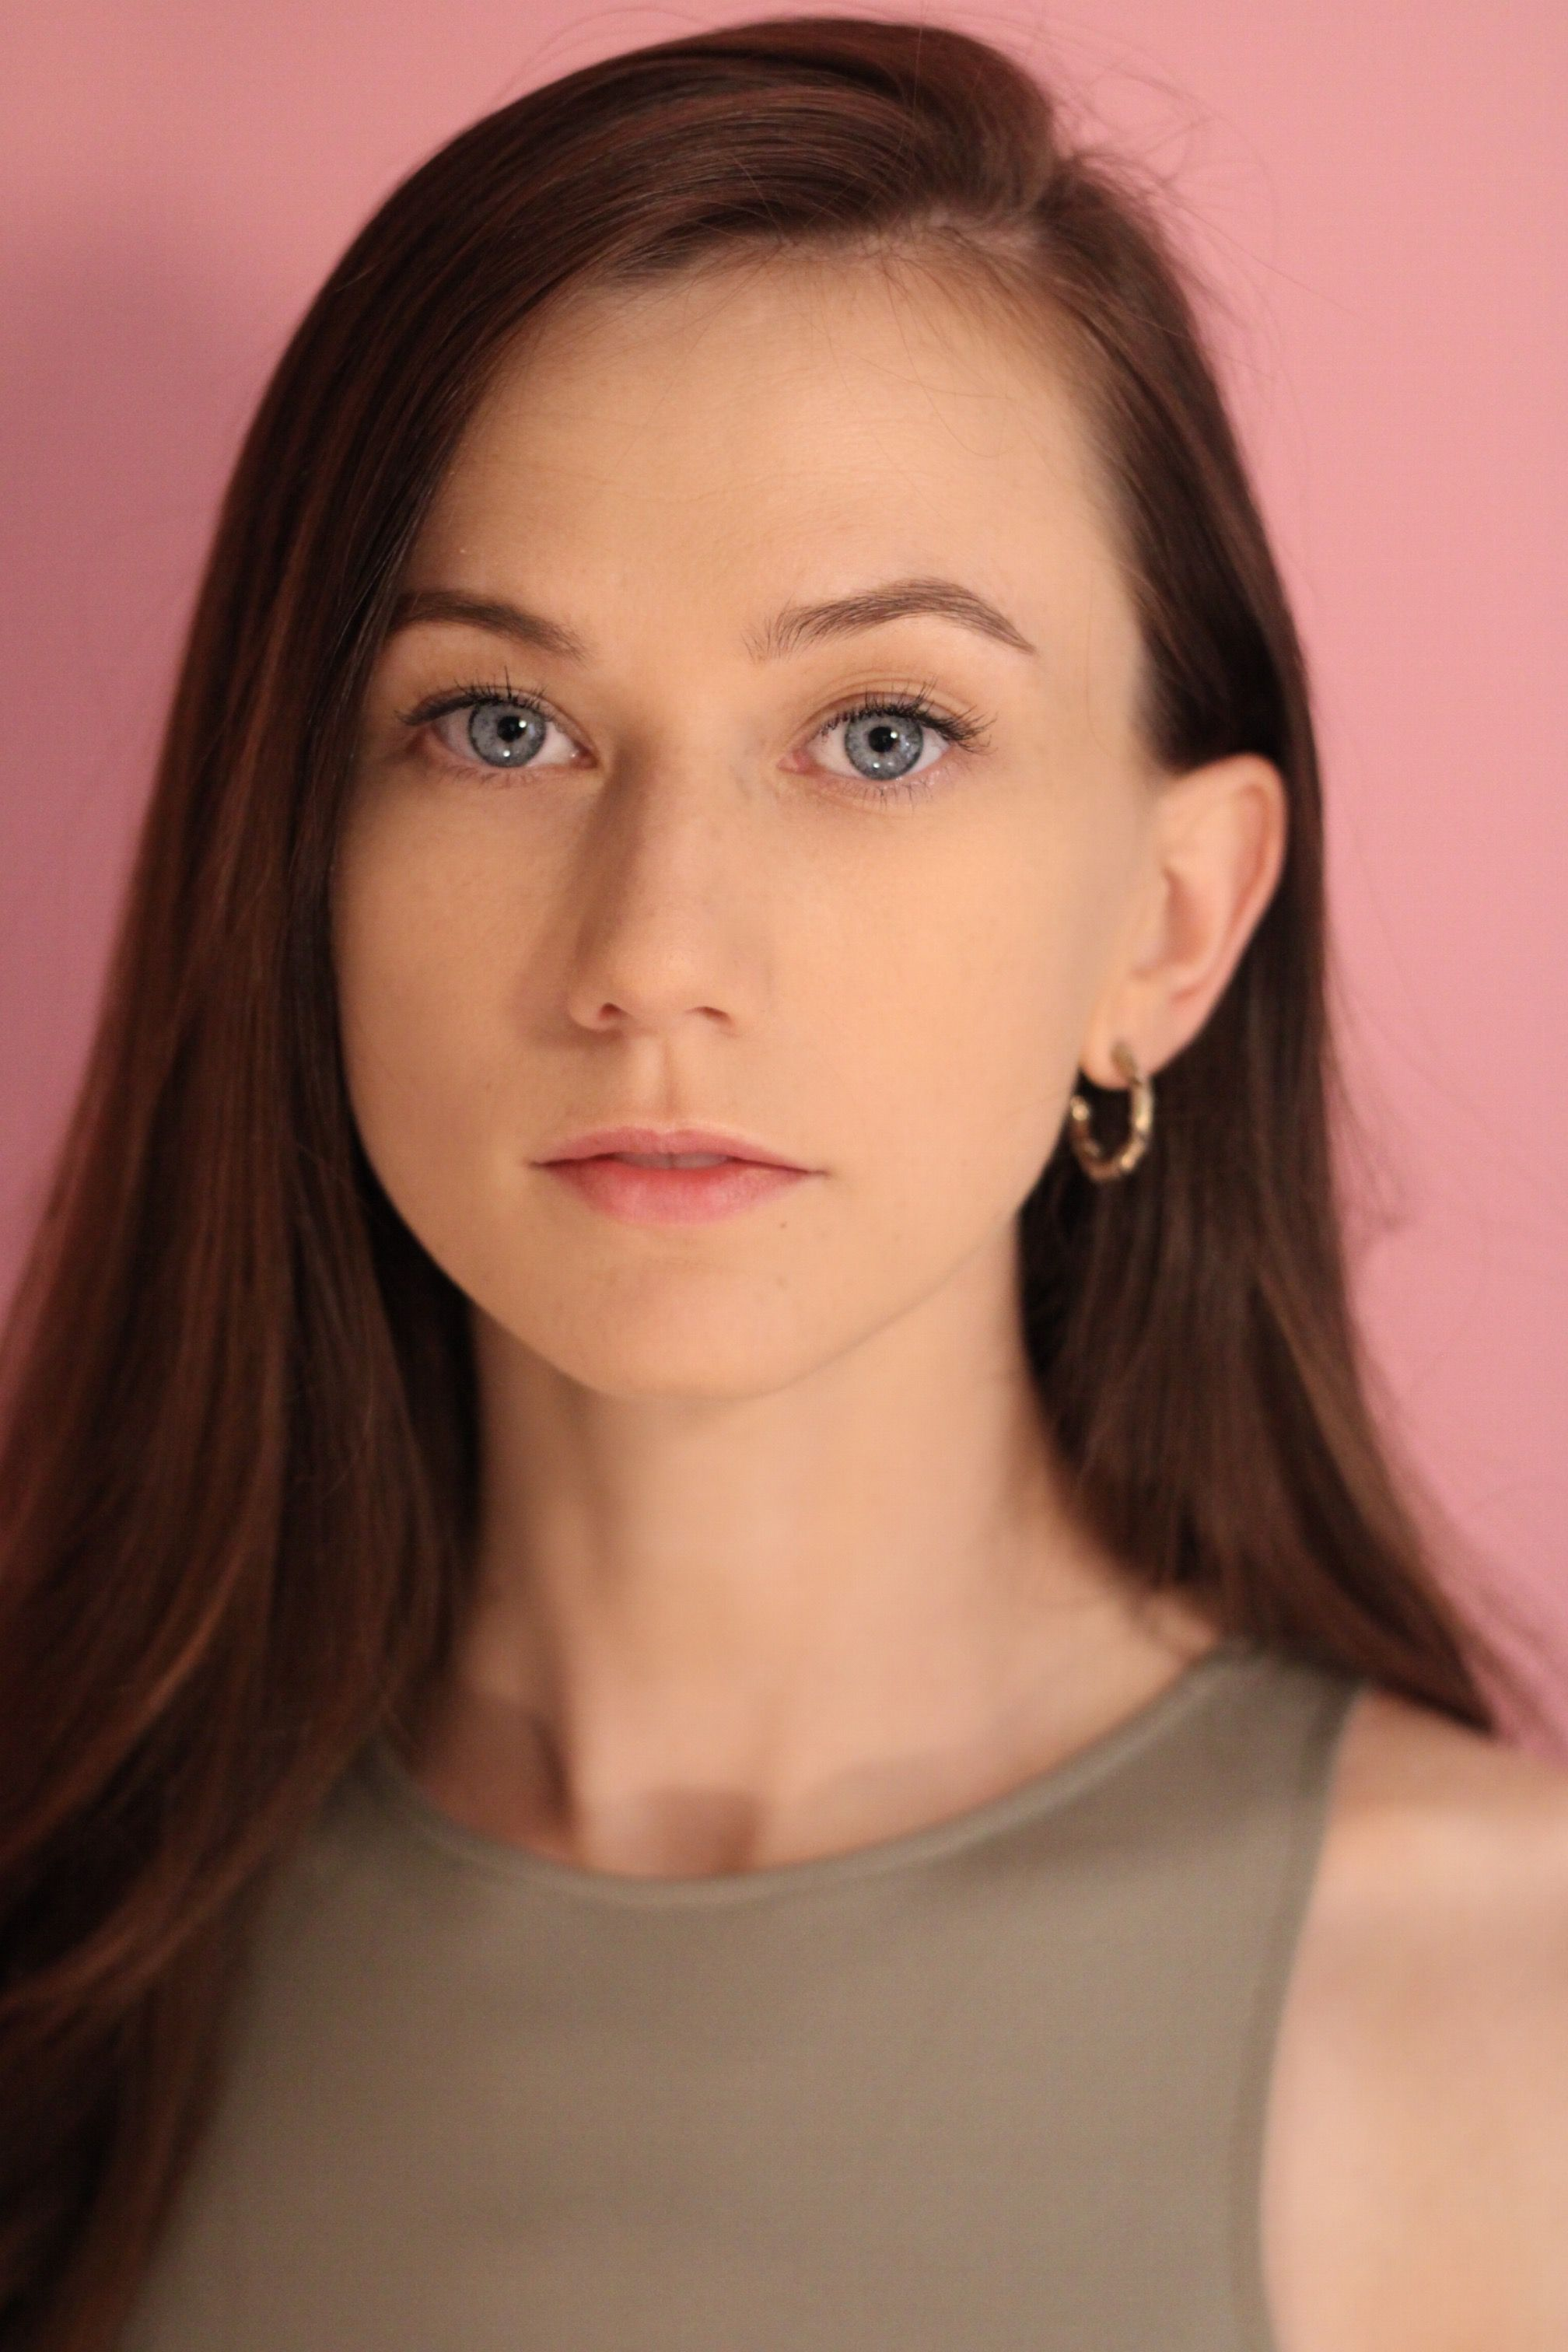 MAKING THE GRADE: Eimheár has starred in a number of roles since moving to New York